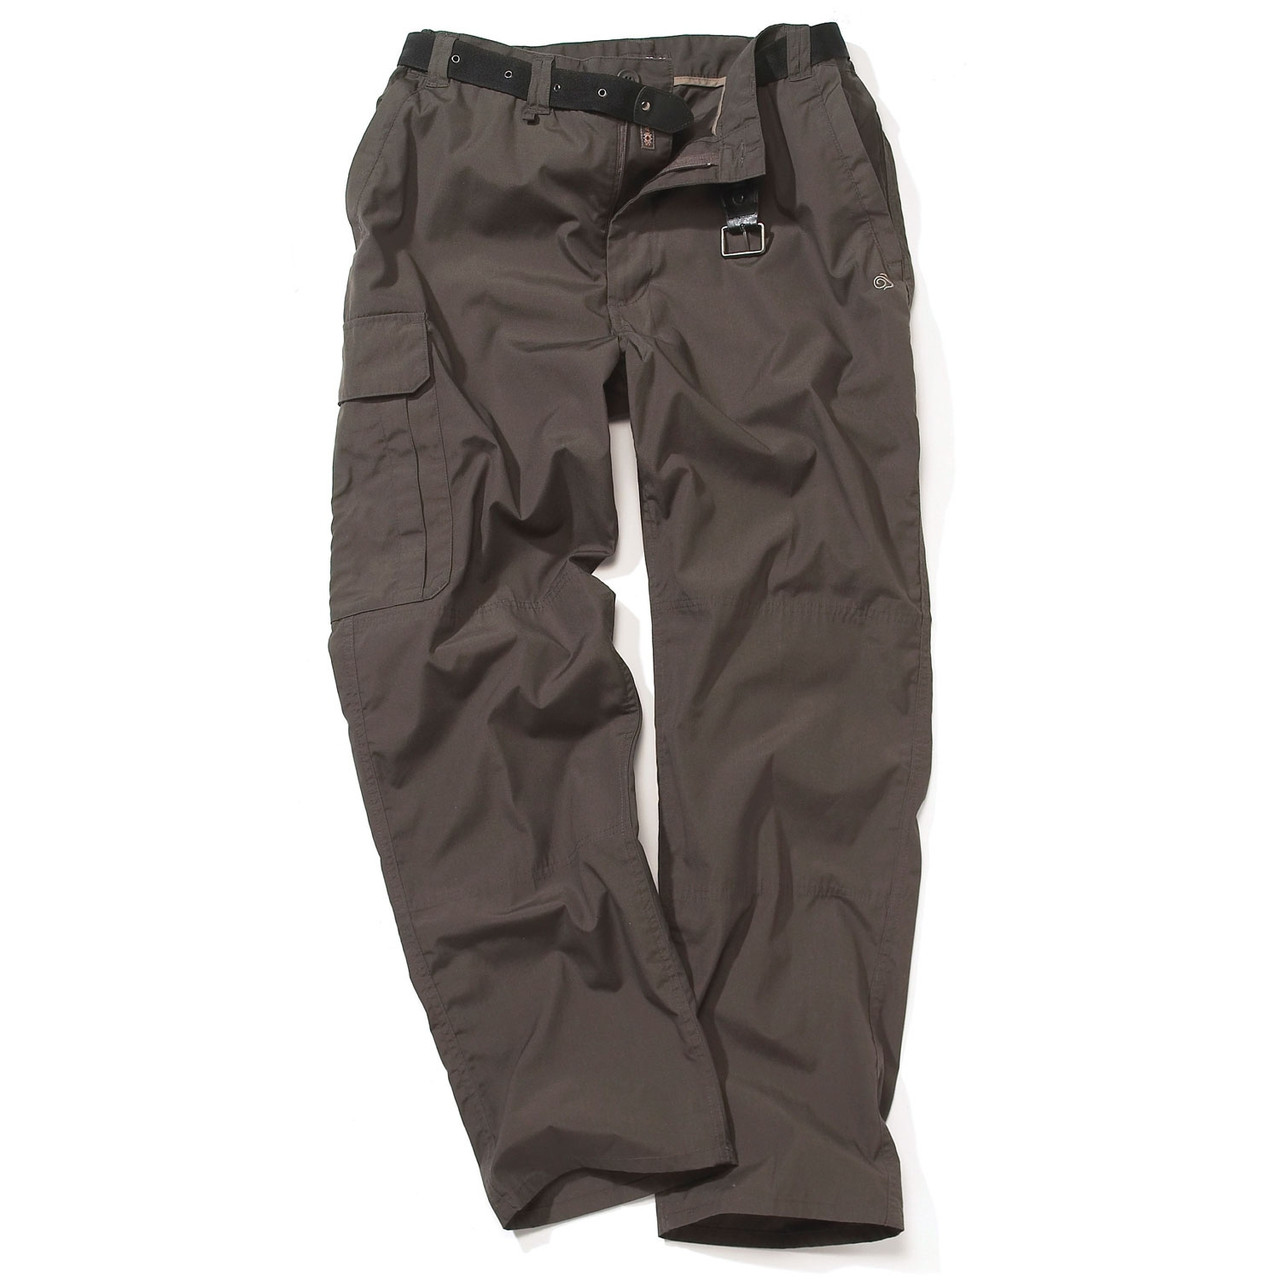 Craghoppers Outdoor Pro Womens Walking Trousers Beige Hiking Pants Long Length